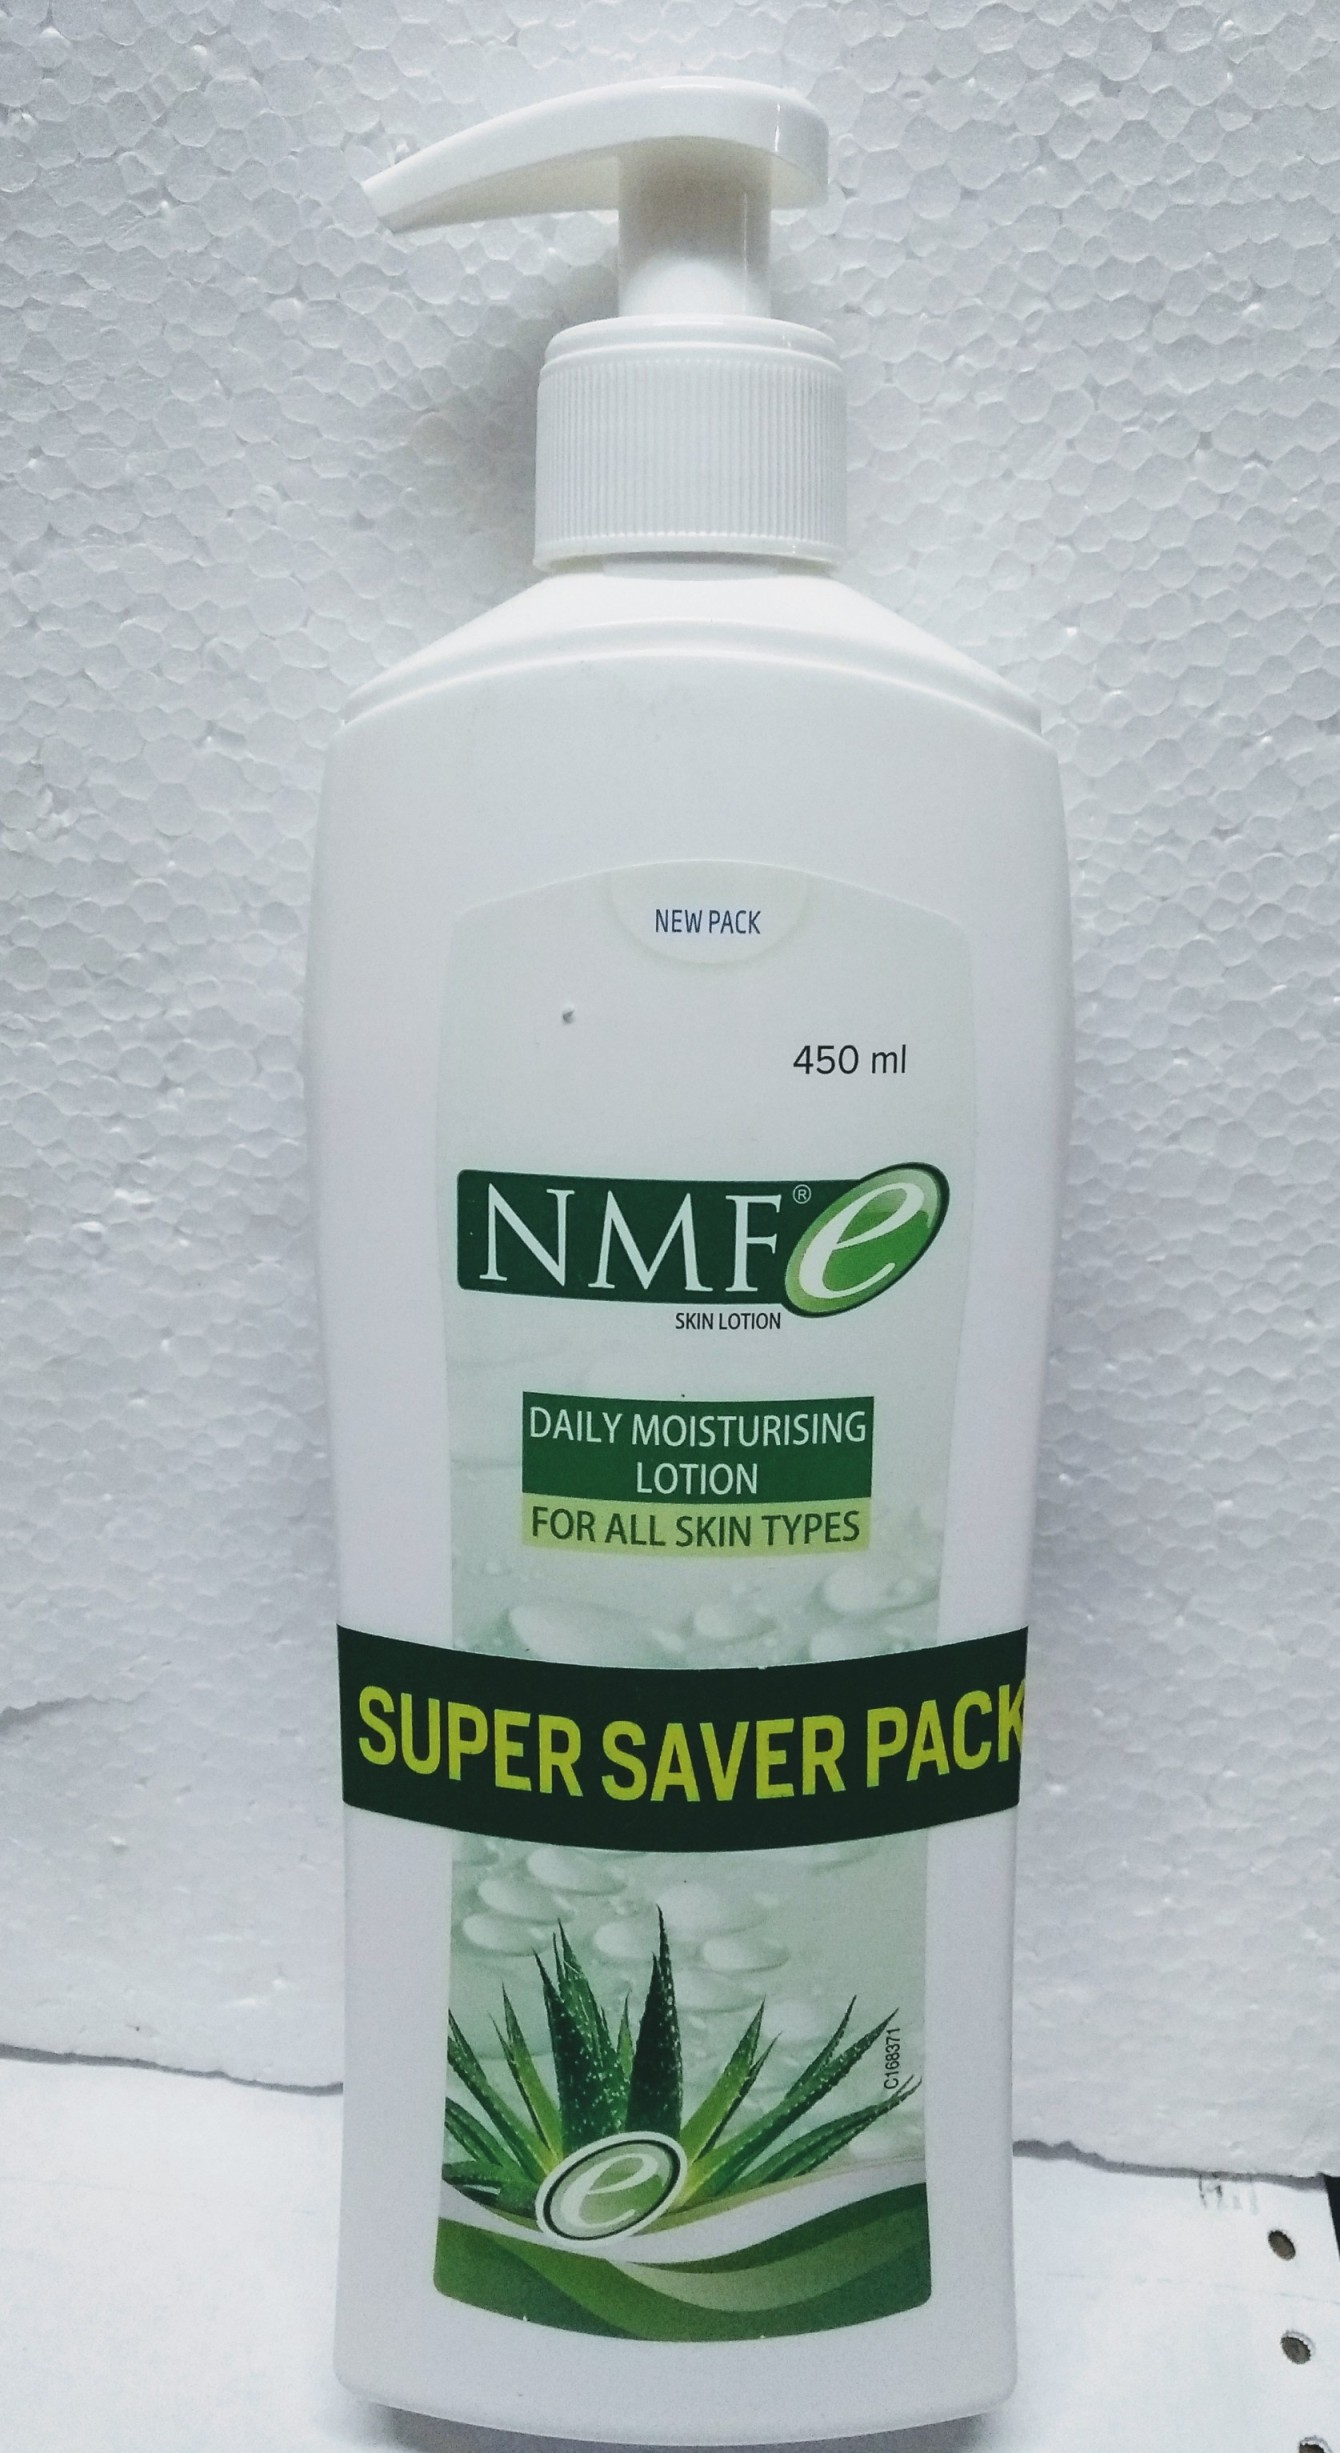 NMF e Skin Lotion 450ml super saver pack